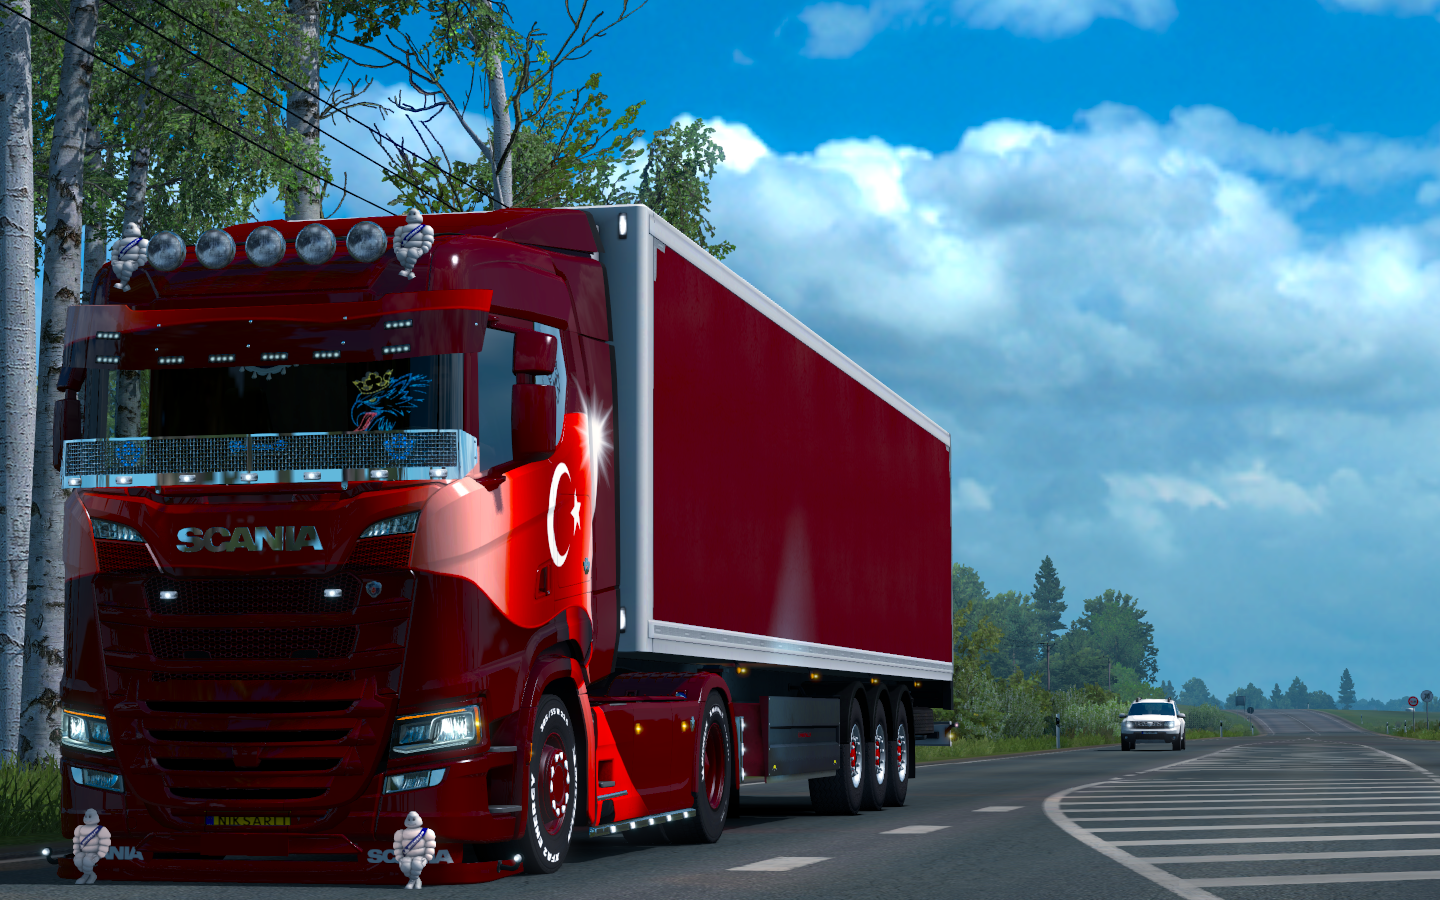 ets2_20190613_131449_00.png